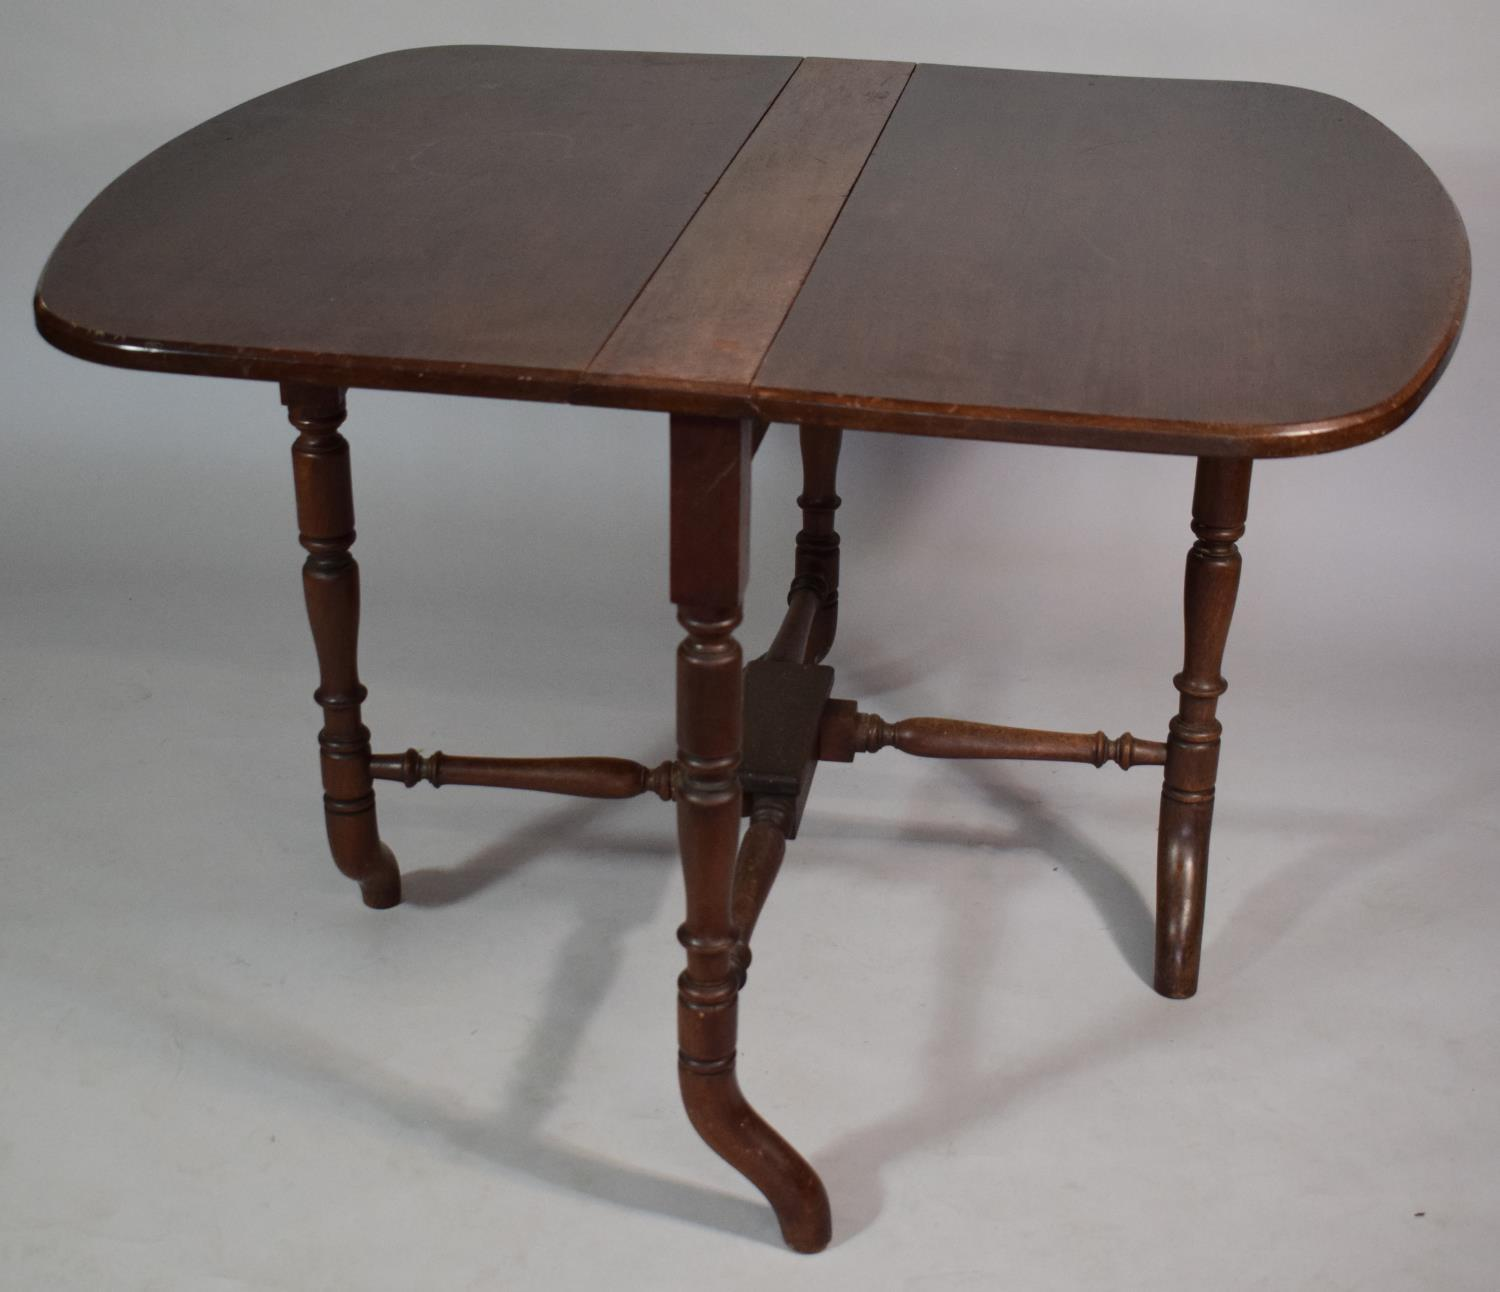 Lot 479 - A 19th Century Mahogany Sutherland Table with Turned Spindle Supports. 107x91x72cms When Open